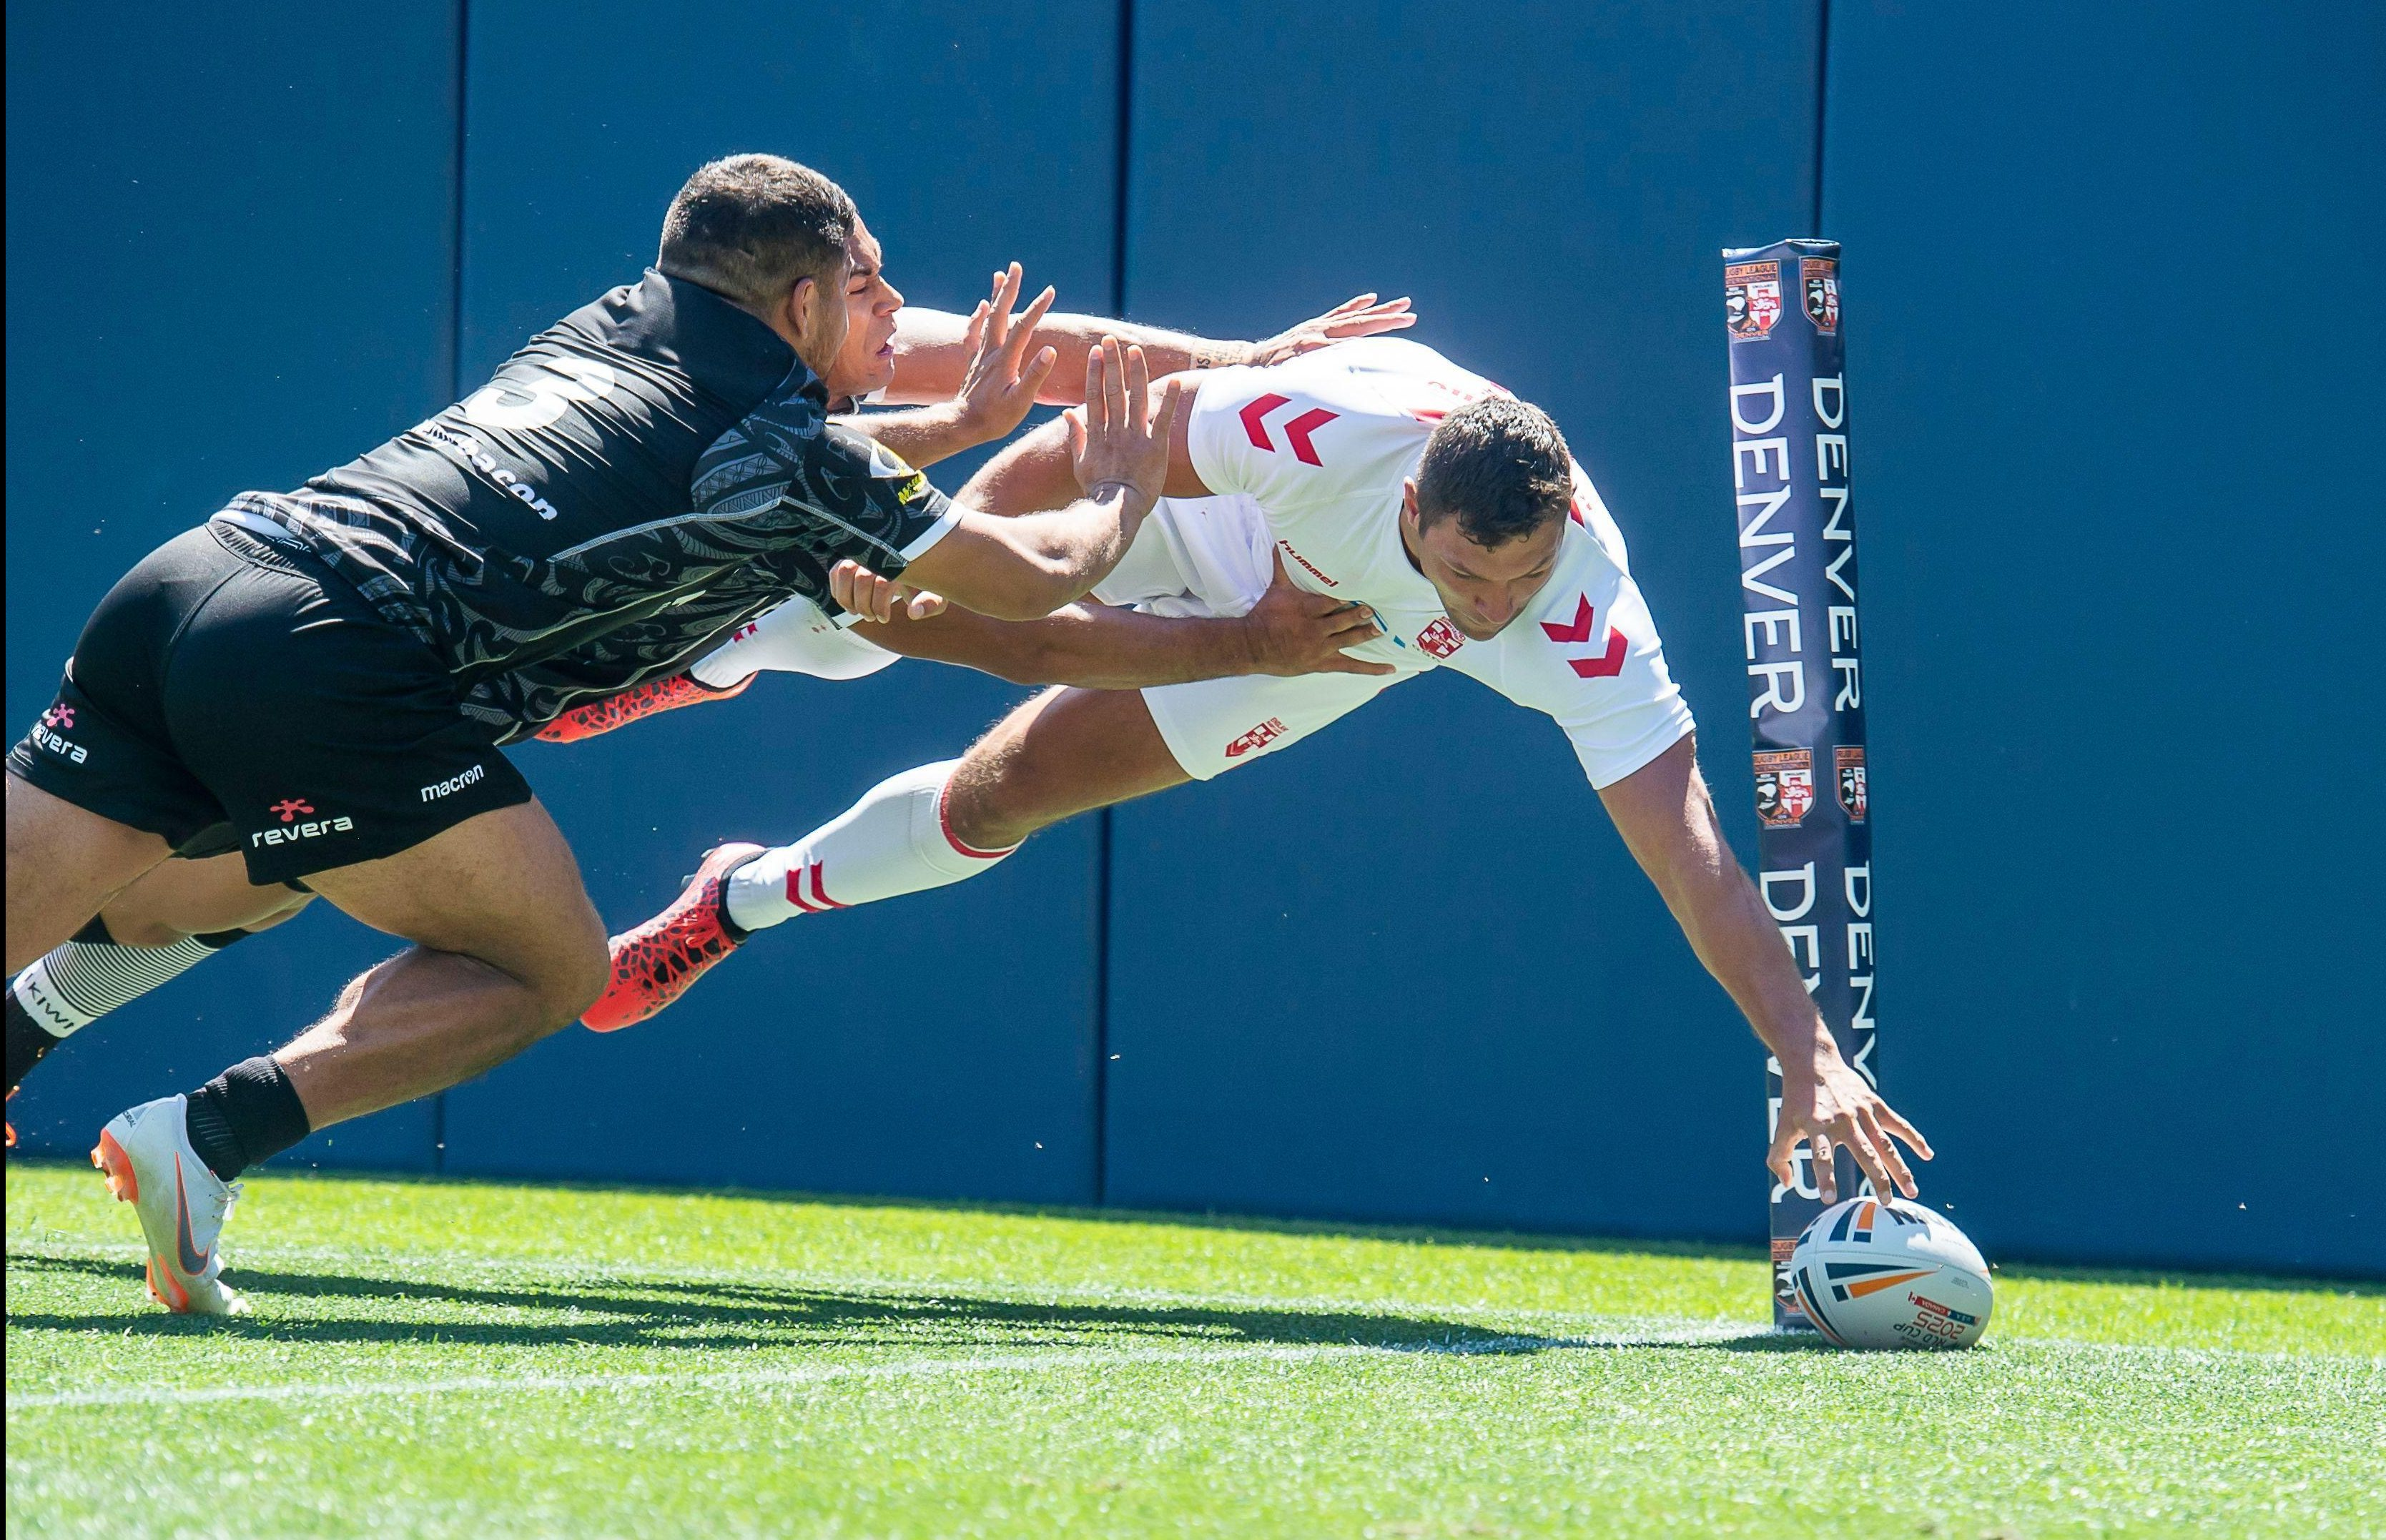 England winger Ryan Hall reaches to score a try during England's 36-18 win against New Zealand in the US